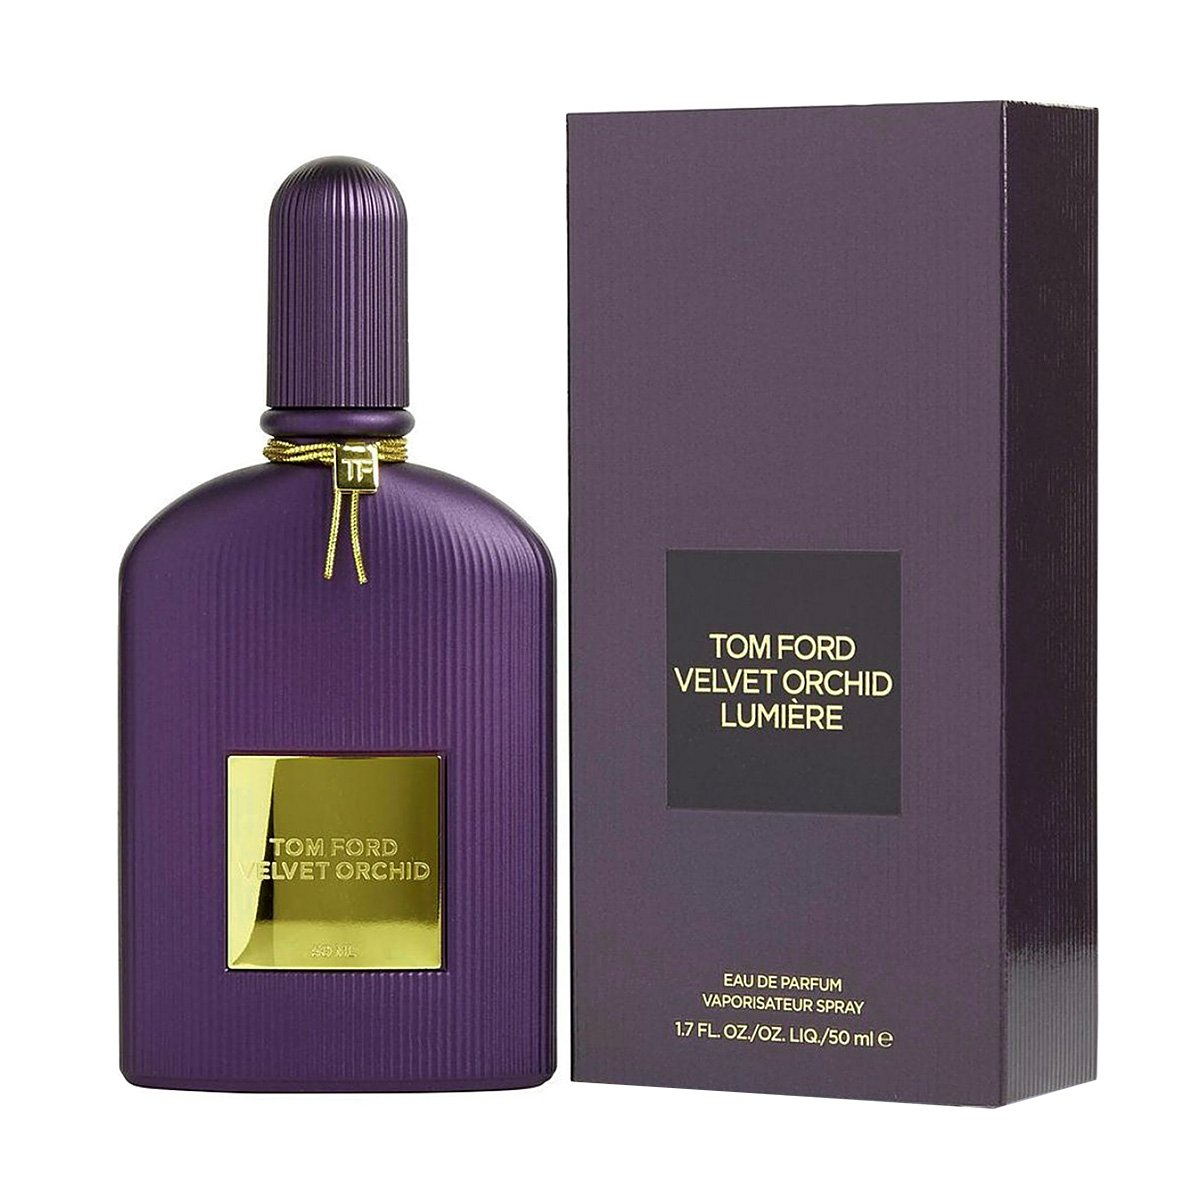 Tom Ford Velvet Orchid Lumiere edp